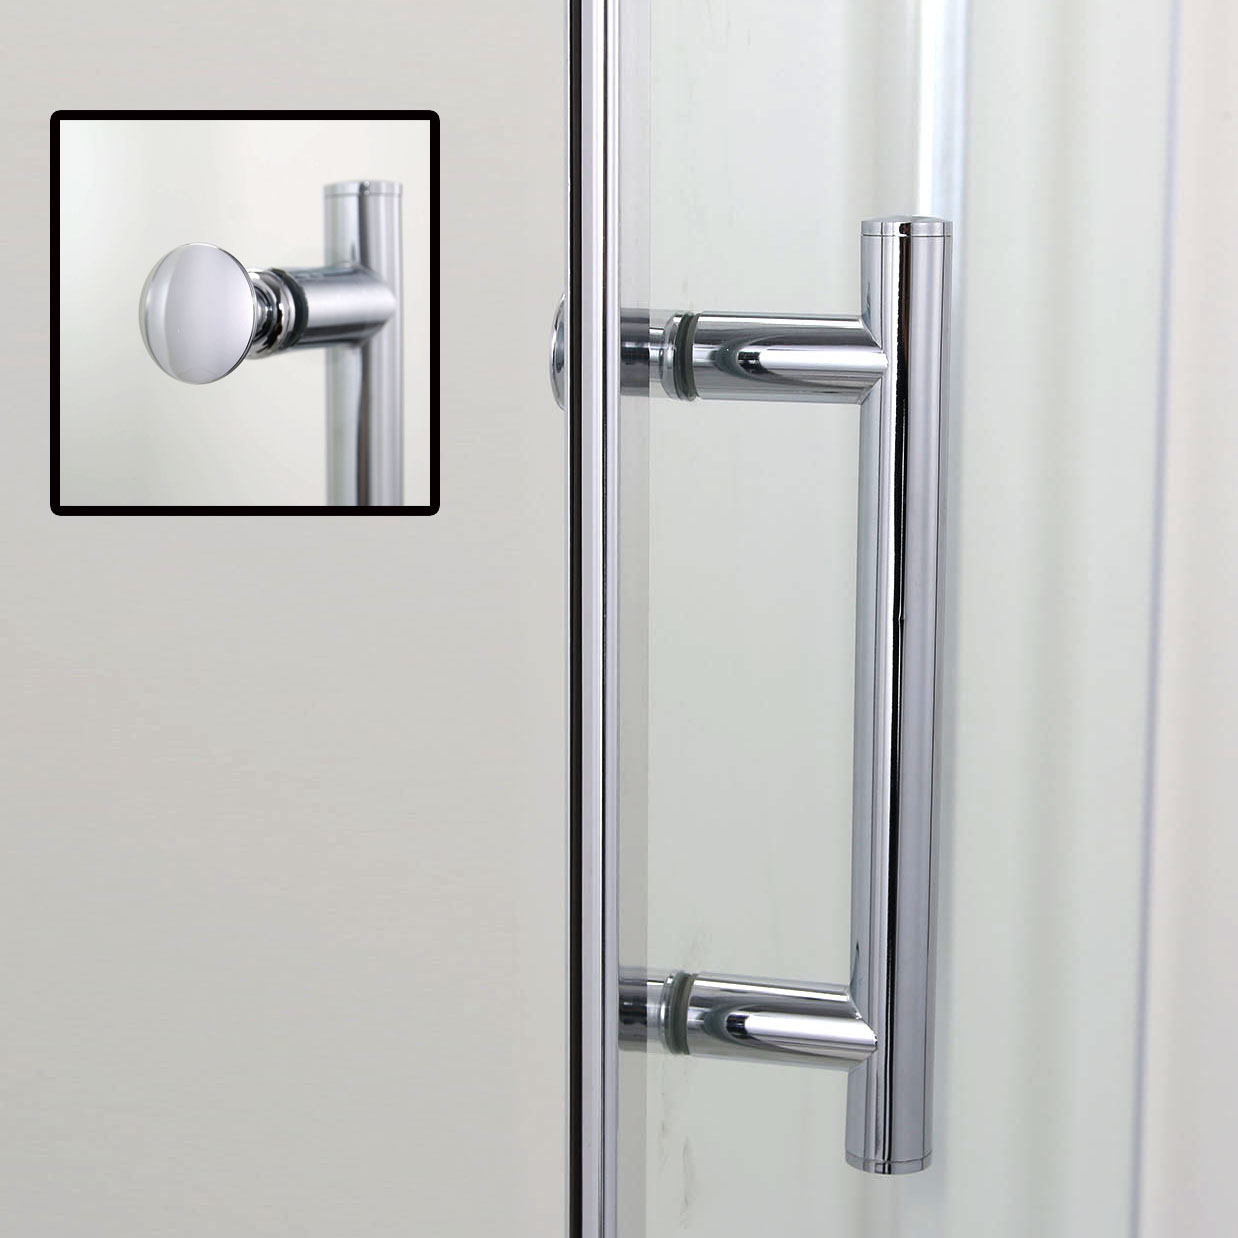 900x1850mm frameless pivot shower doors hinge screen glass enclosures cubicle ebay